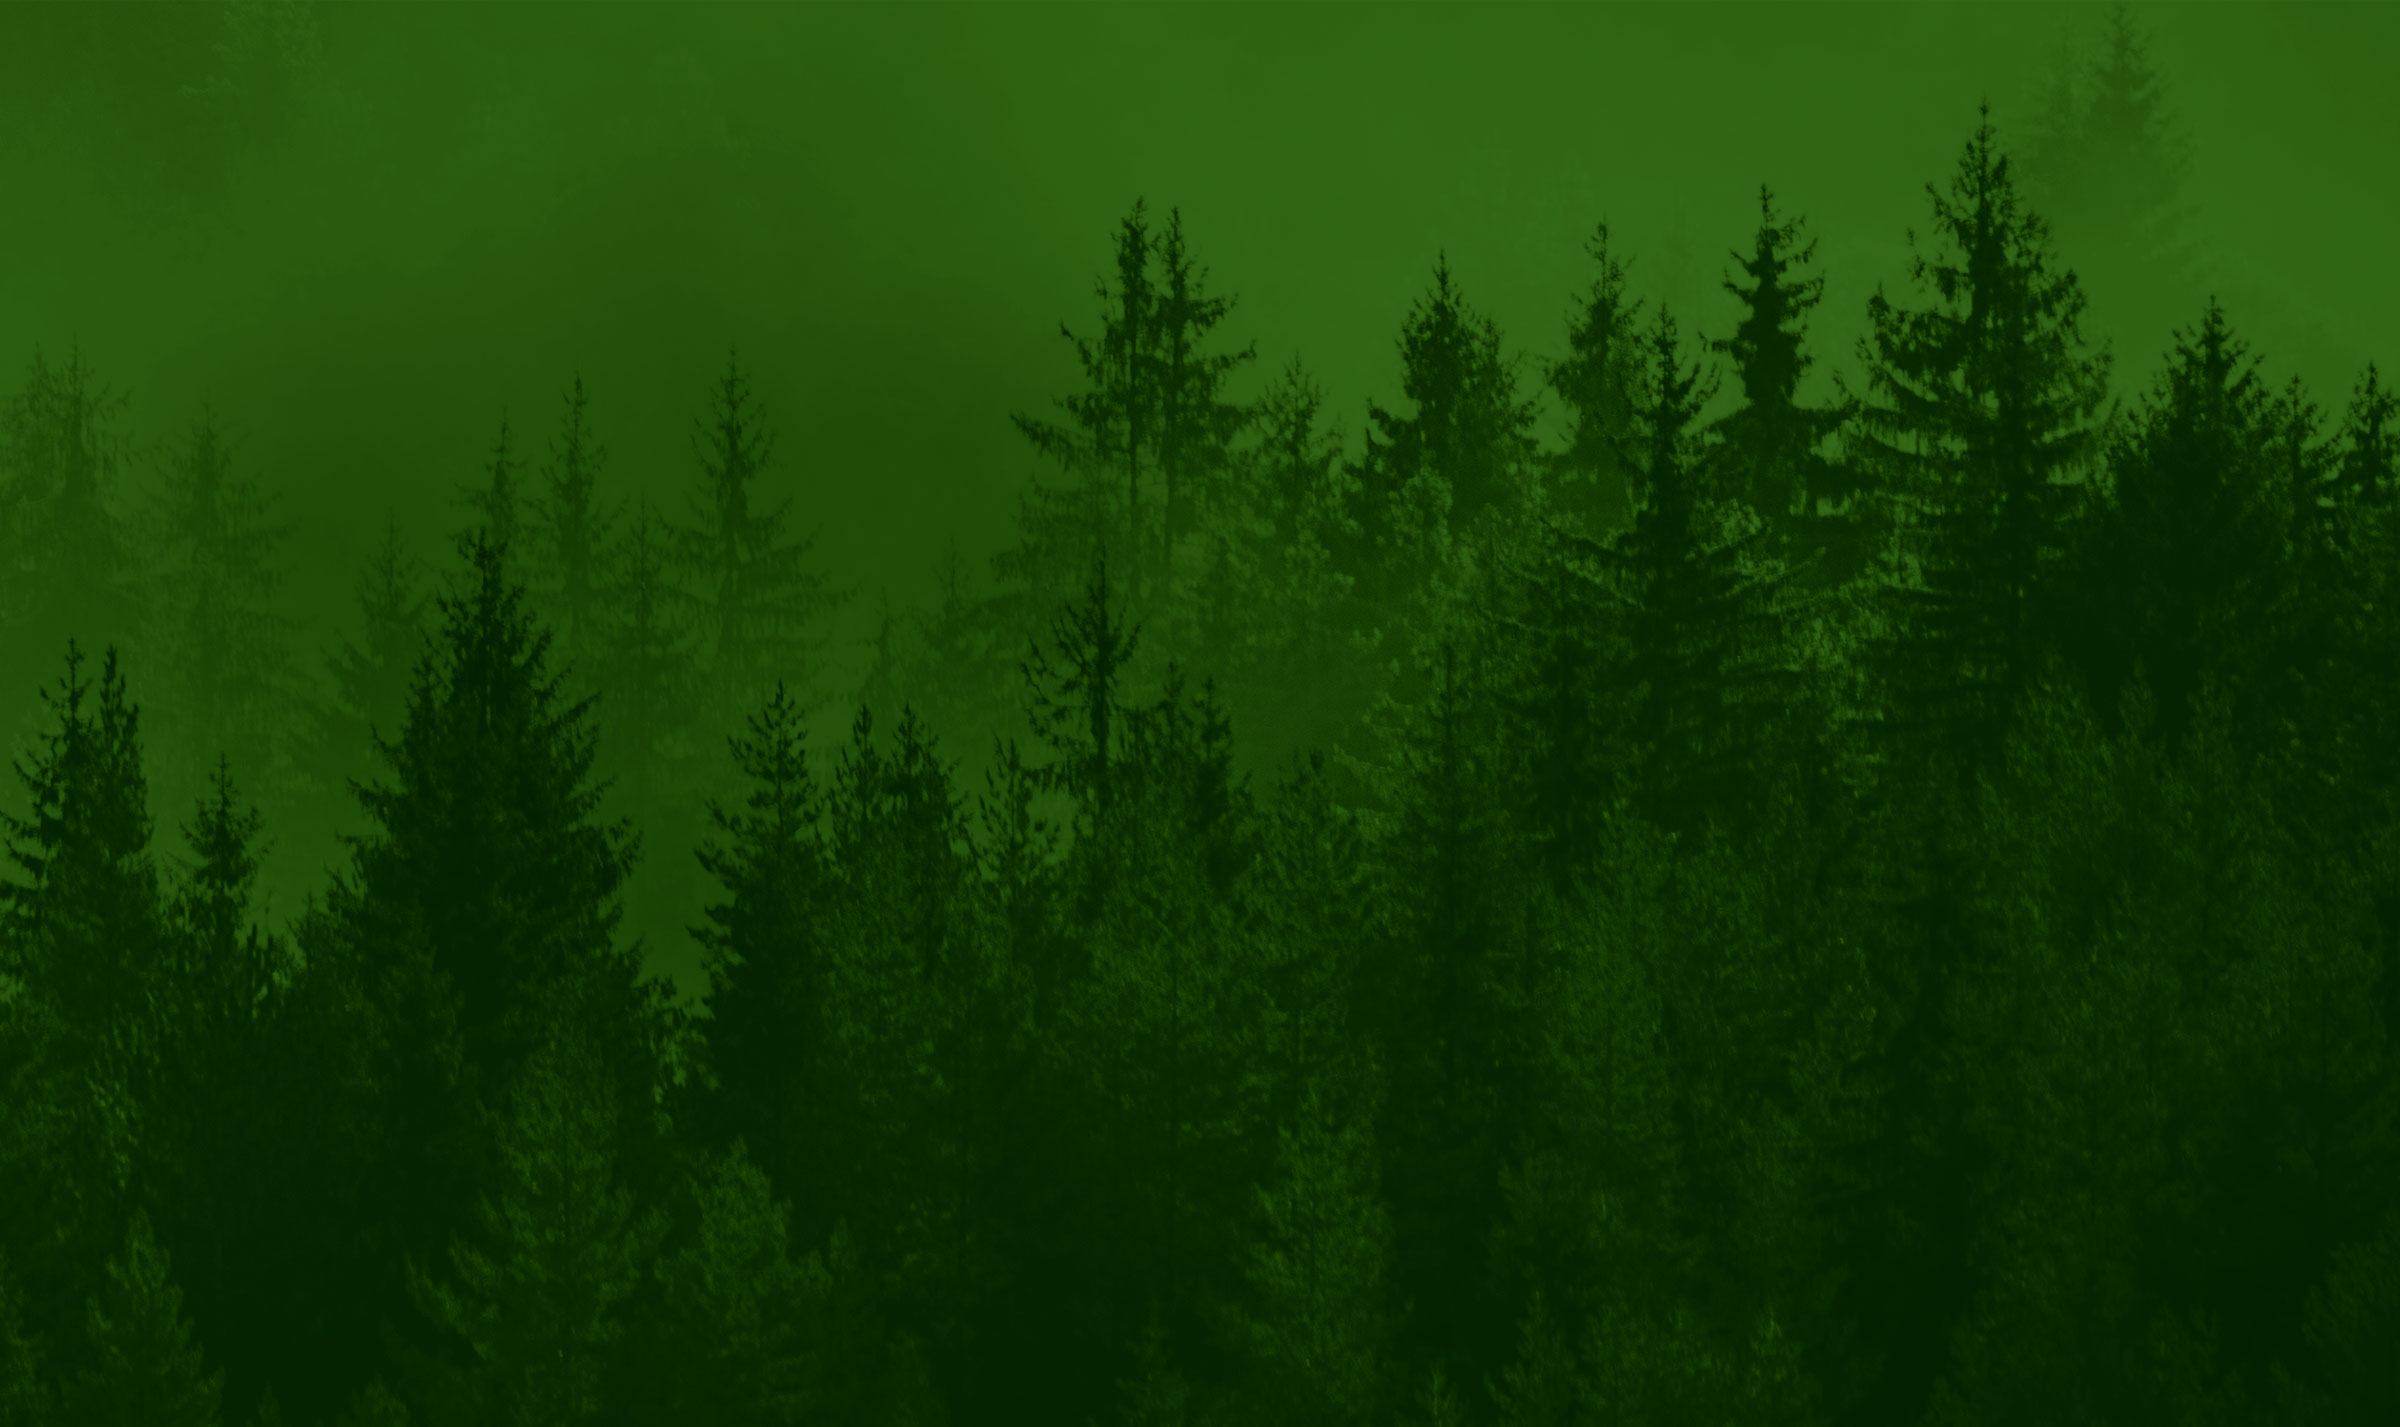 Image of green tree tops with green backdrop